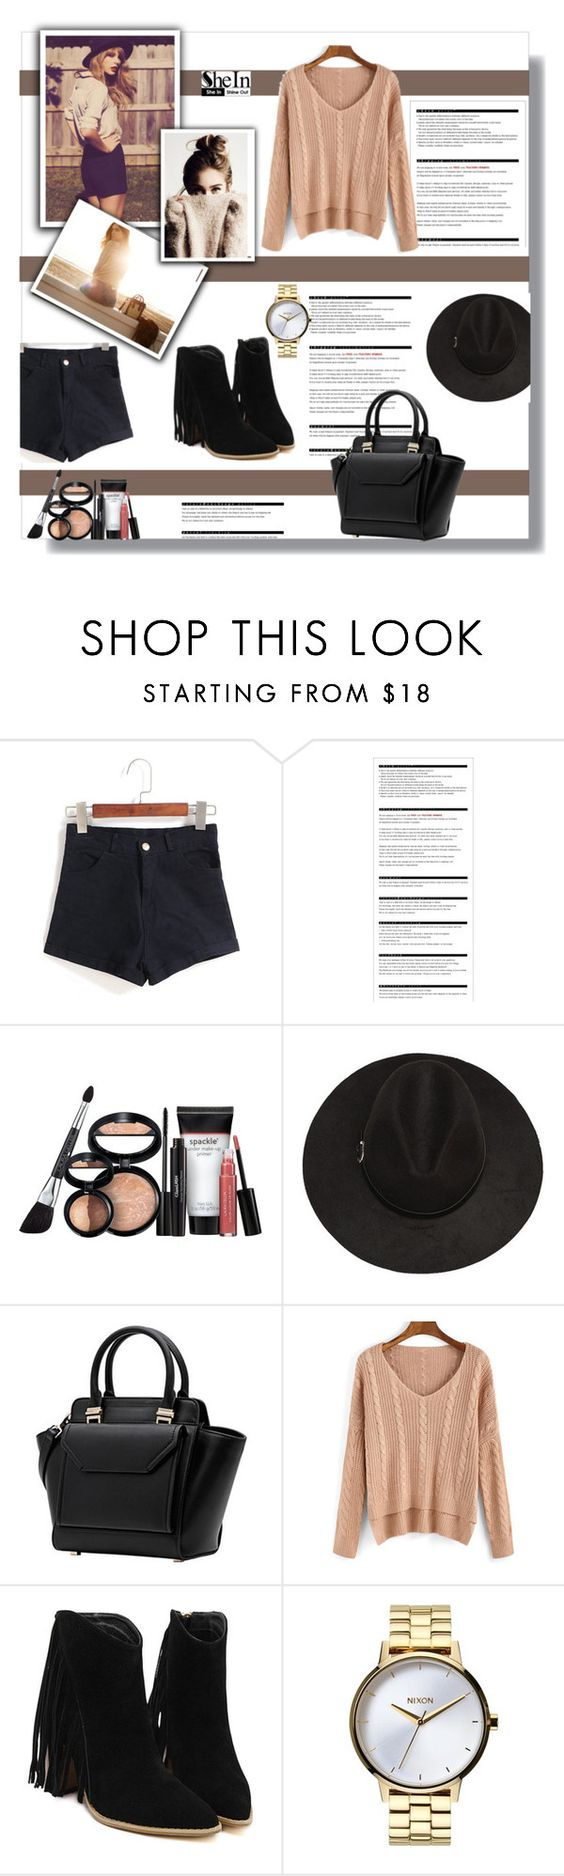 """""""SheIn 8 (7)"""" by penny325 ❤ liked on Polyvore featuring Arche, Laura Geller, Nixon and Sheinside"""